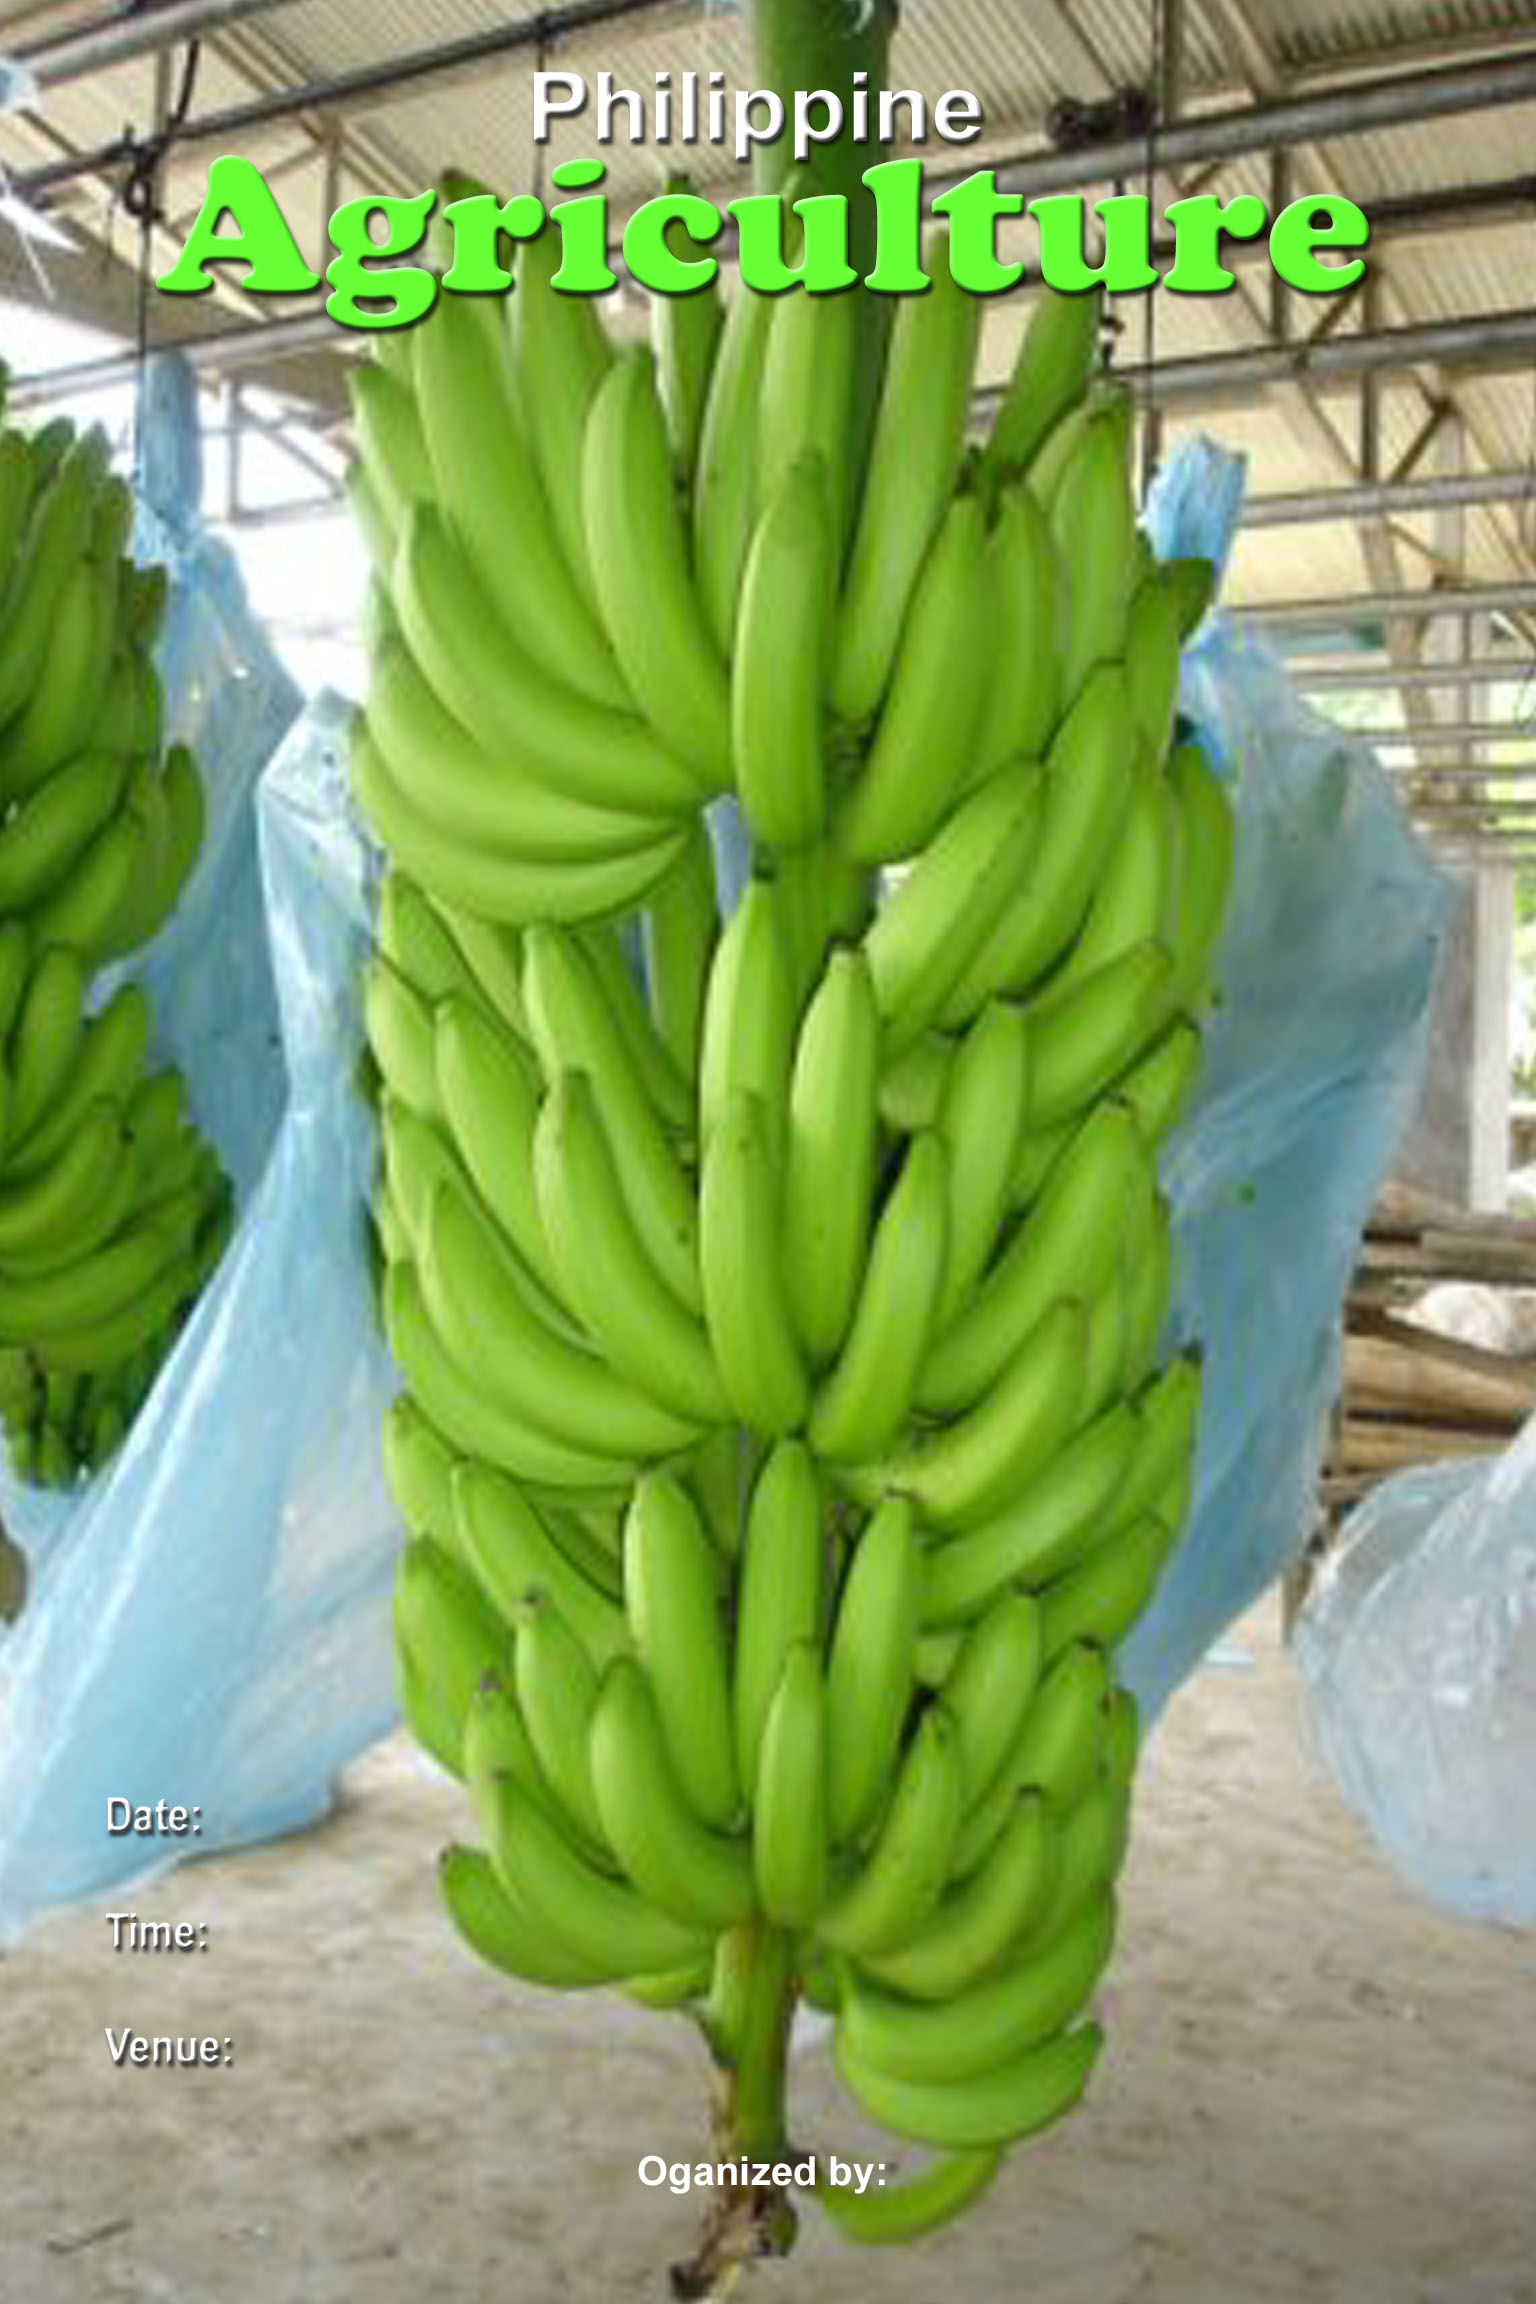 philippine-agriculture-template-copy - Philippine Banana Export - Philippine Photo Gallery